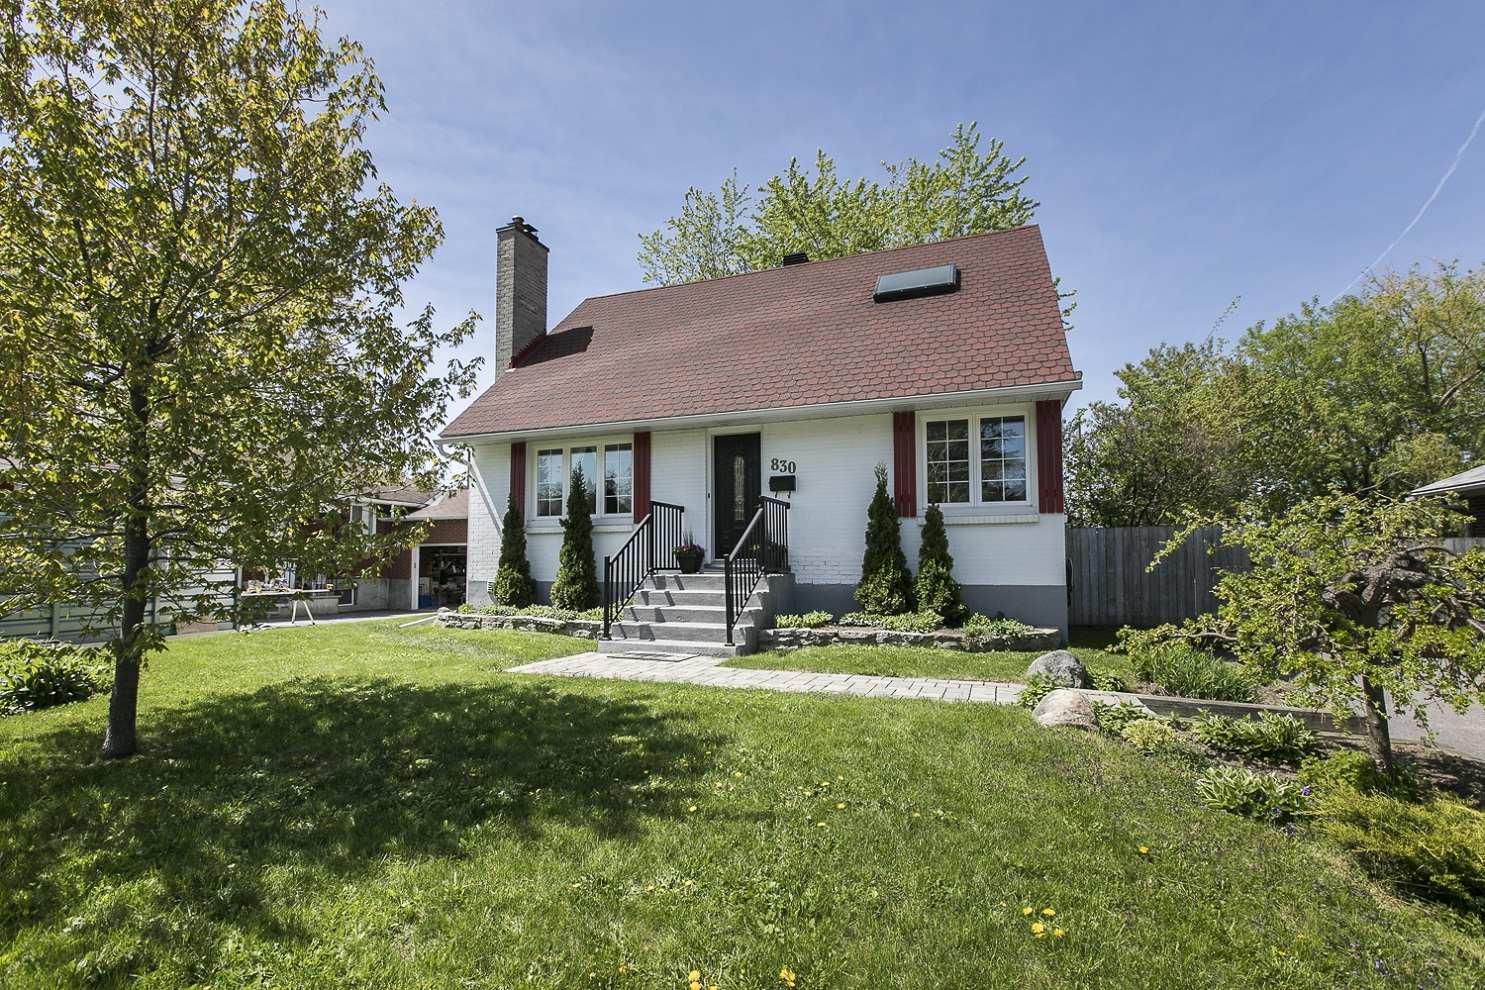 830 Iroquois Road | Well-Maintained Single Family Home in Glabar Park